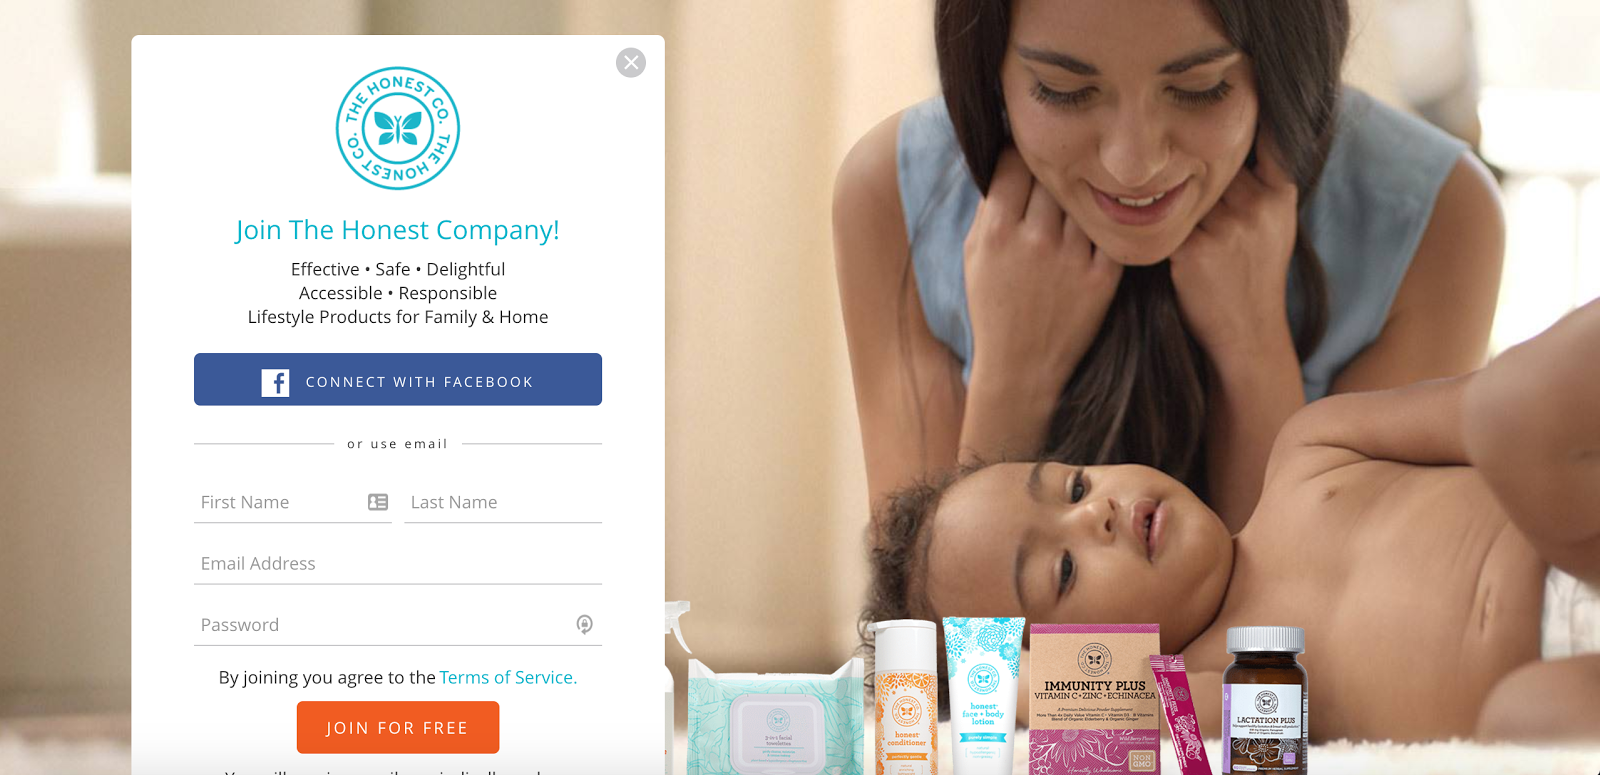 A gated page on the Honest Company's website